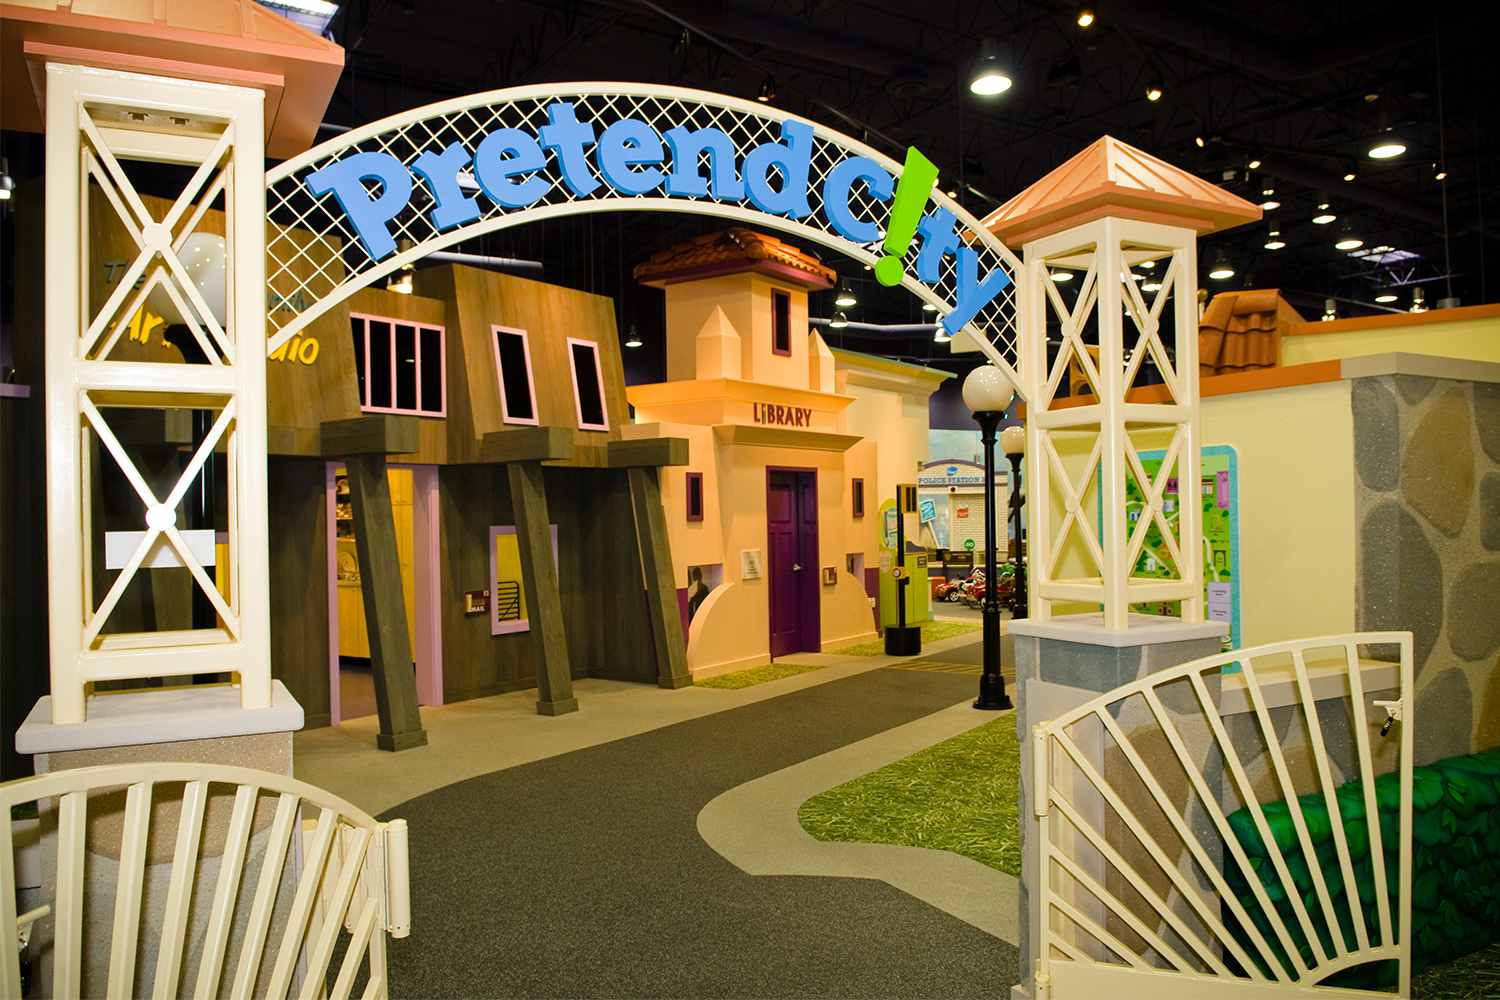 Indoor fake town with an entry gate that says Pretend C!ty